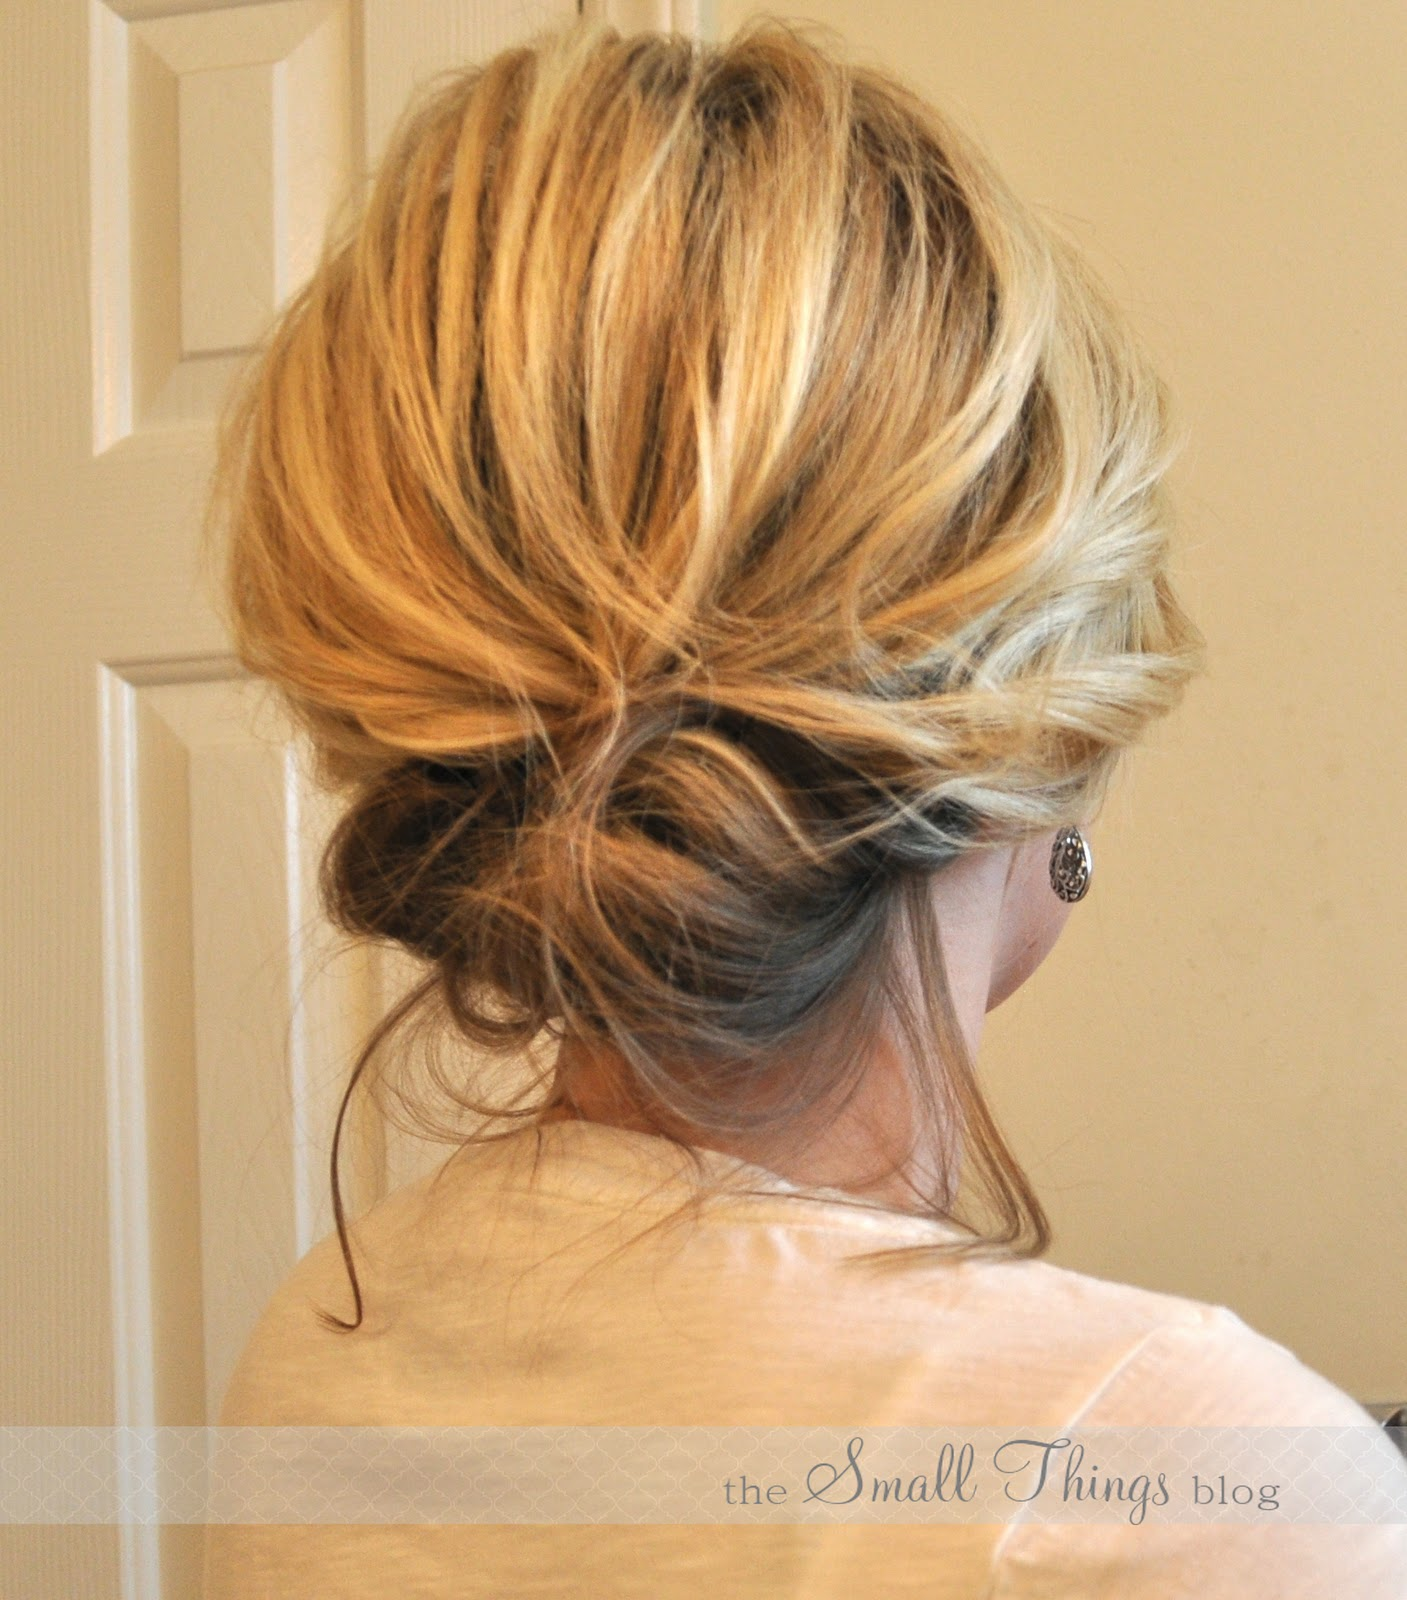 46 easy cute wedding hairstyles hairstylo. Black Bedroom Furniture Sets. Home Design Ideas